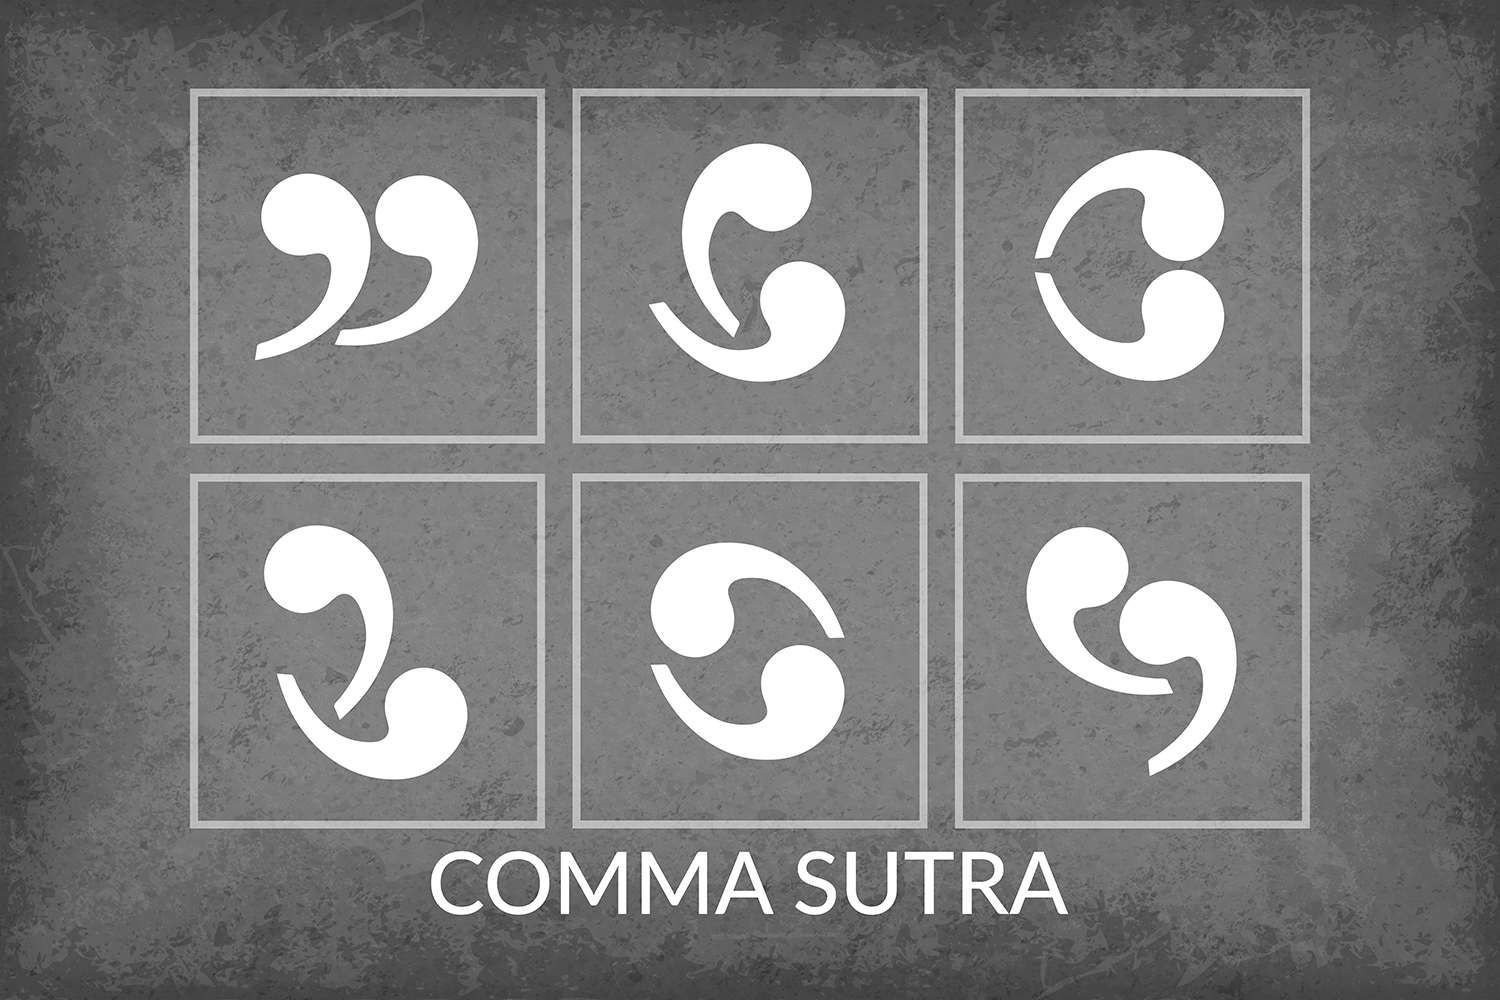 six images featuring two commas embracing as if it were kama sutra